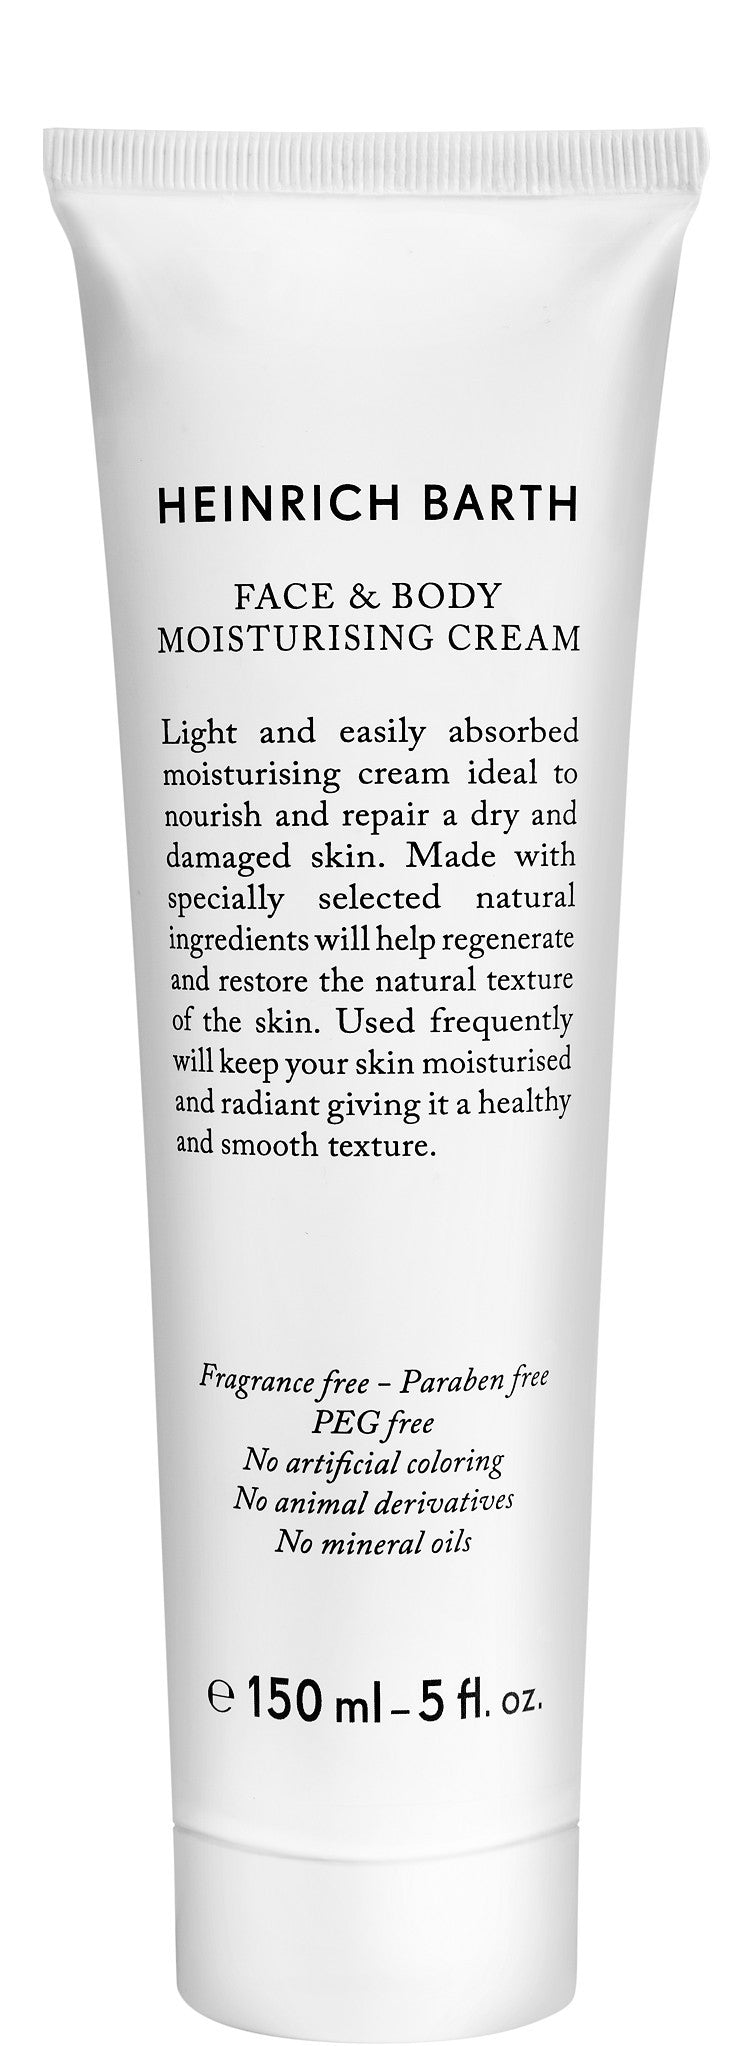 MOISTURISING CREAM 150ml - 5 fl. oz.